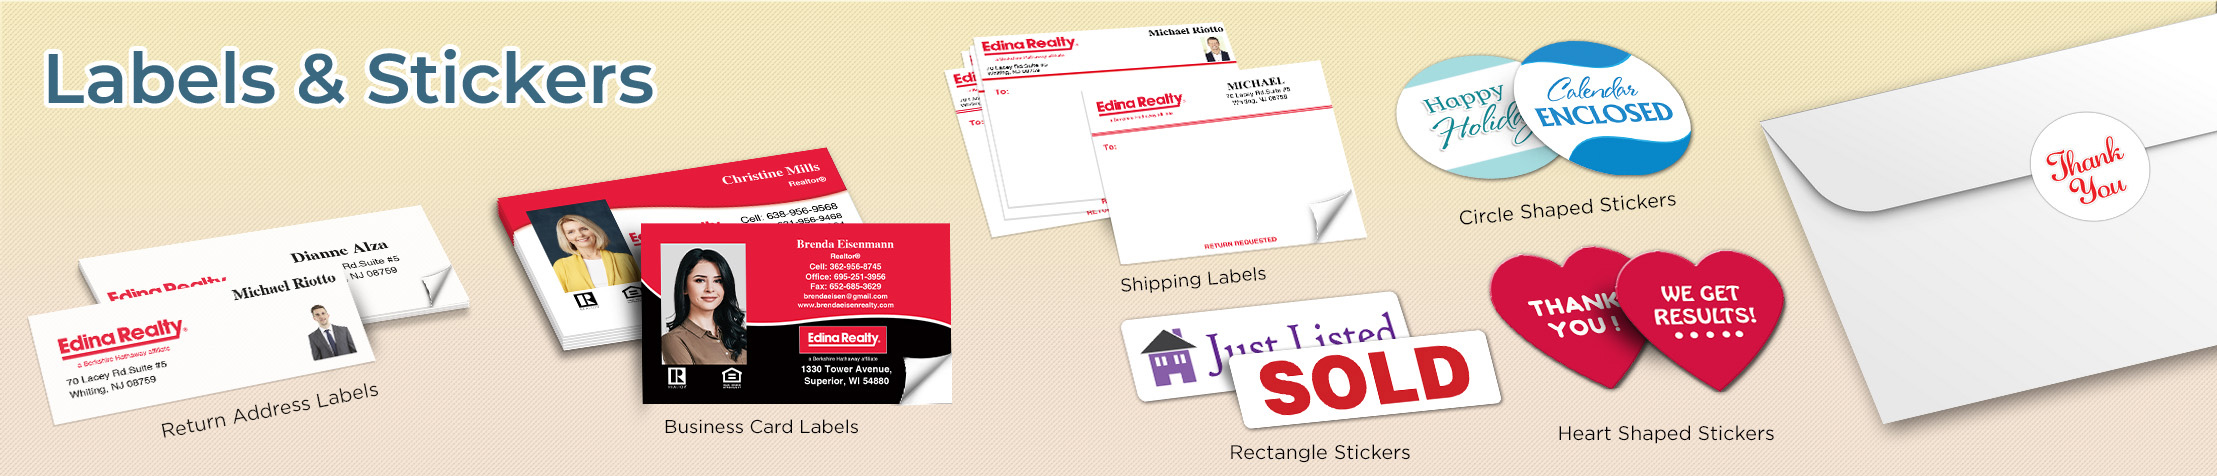 Edina Realty  Labels and Stickers - Edina Realty  business card labels, return address labels, shipping labels, and assorted stickers | BestPrintBuy.com